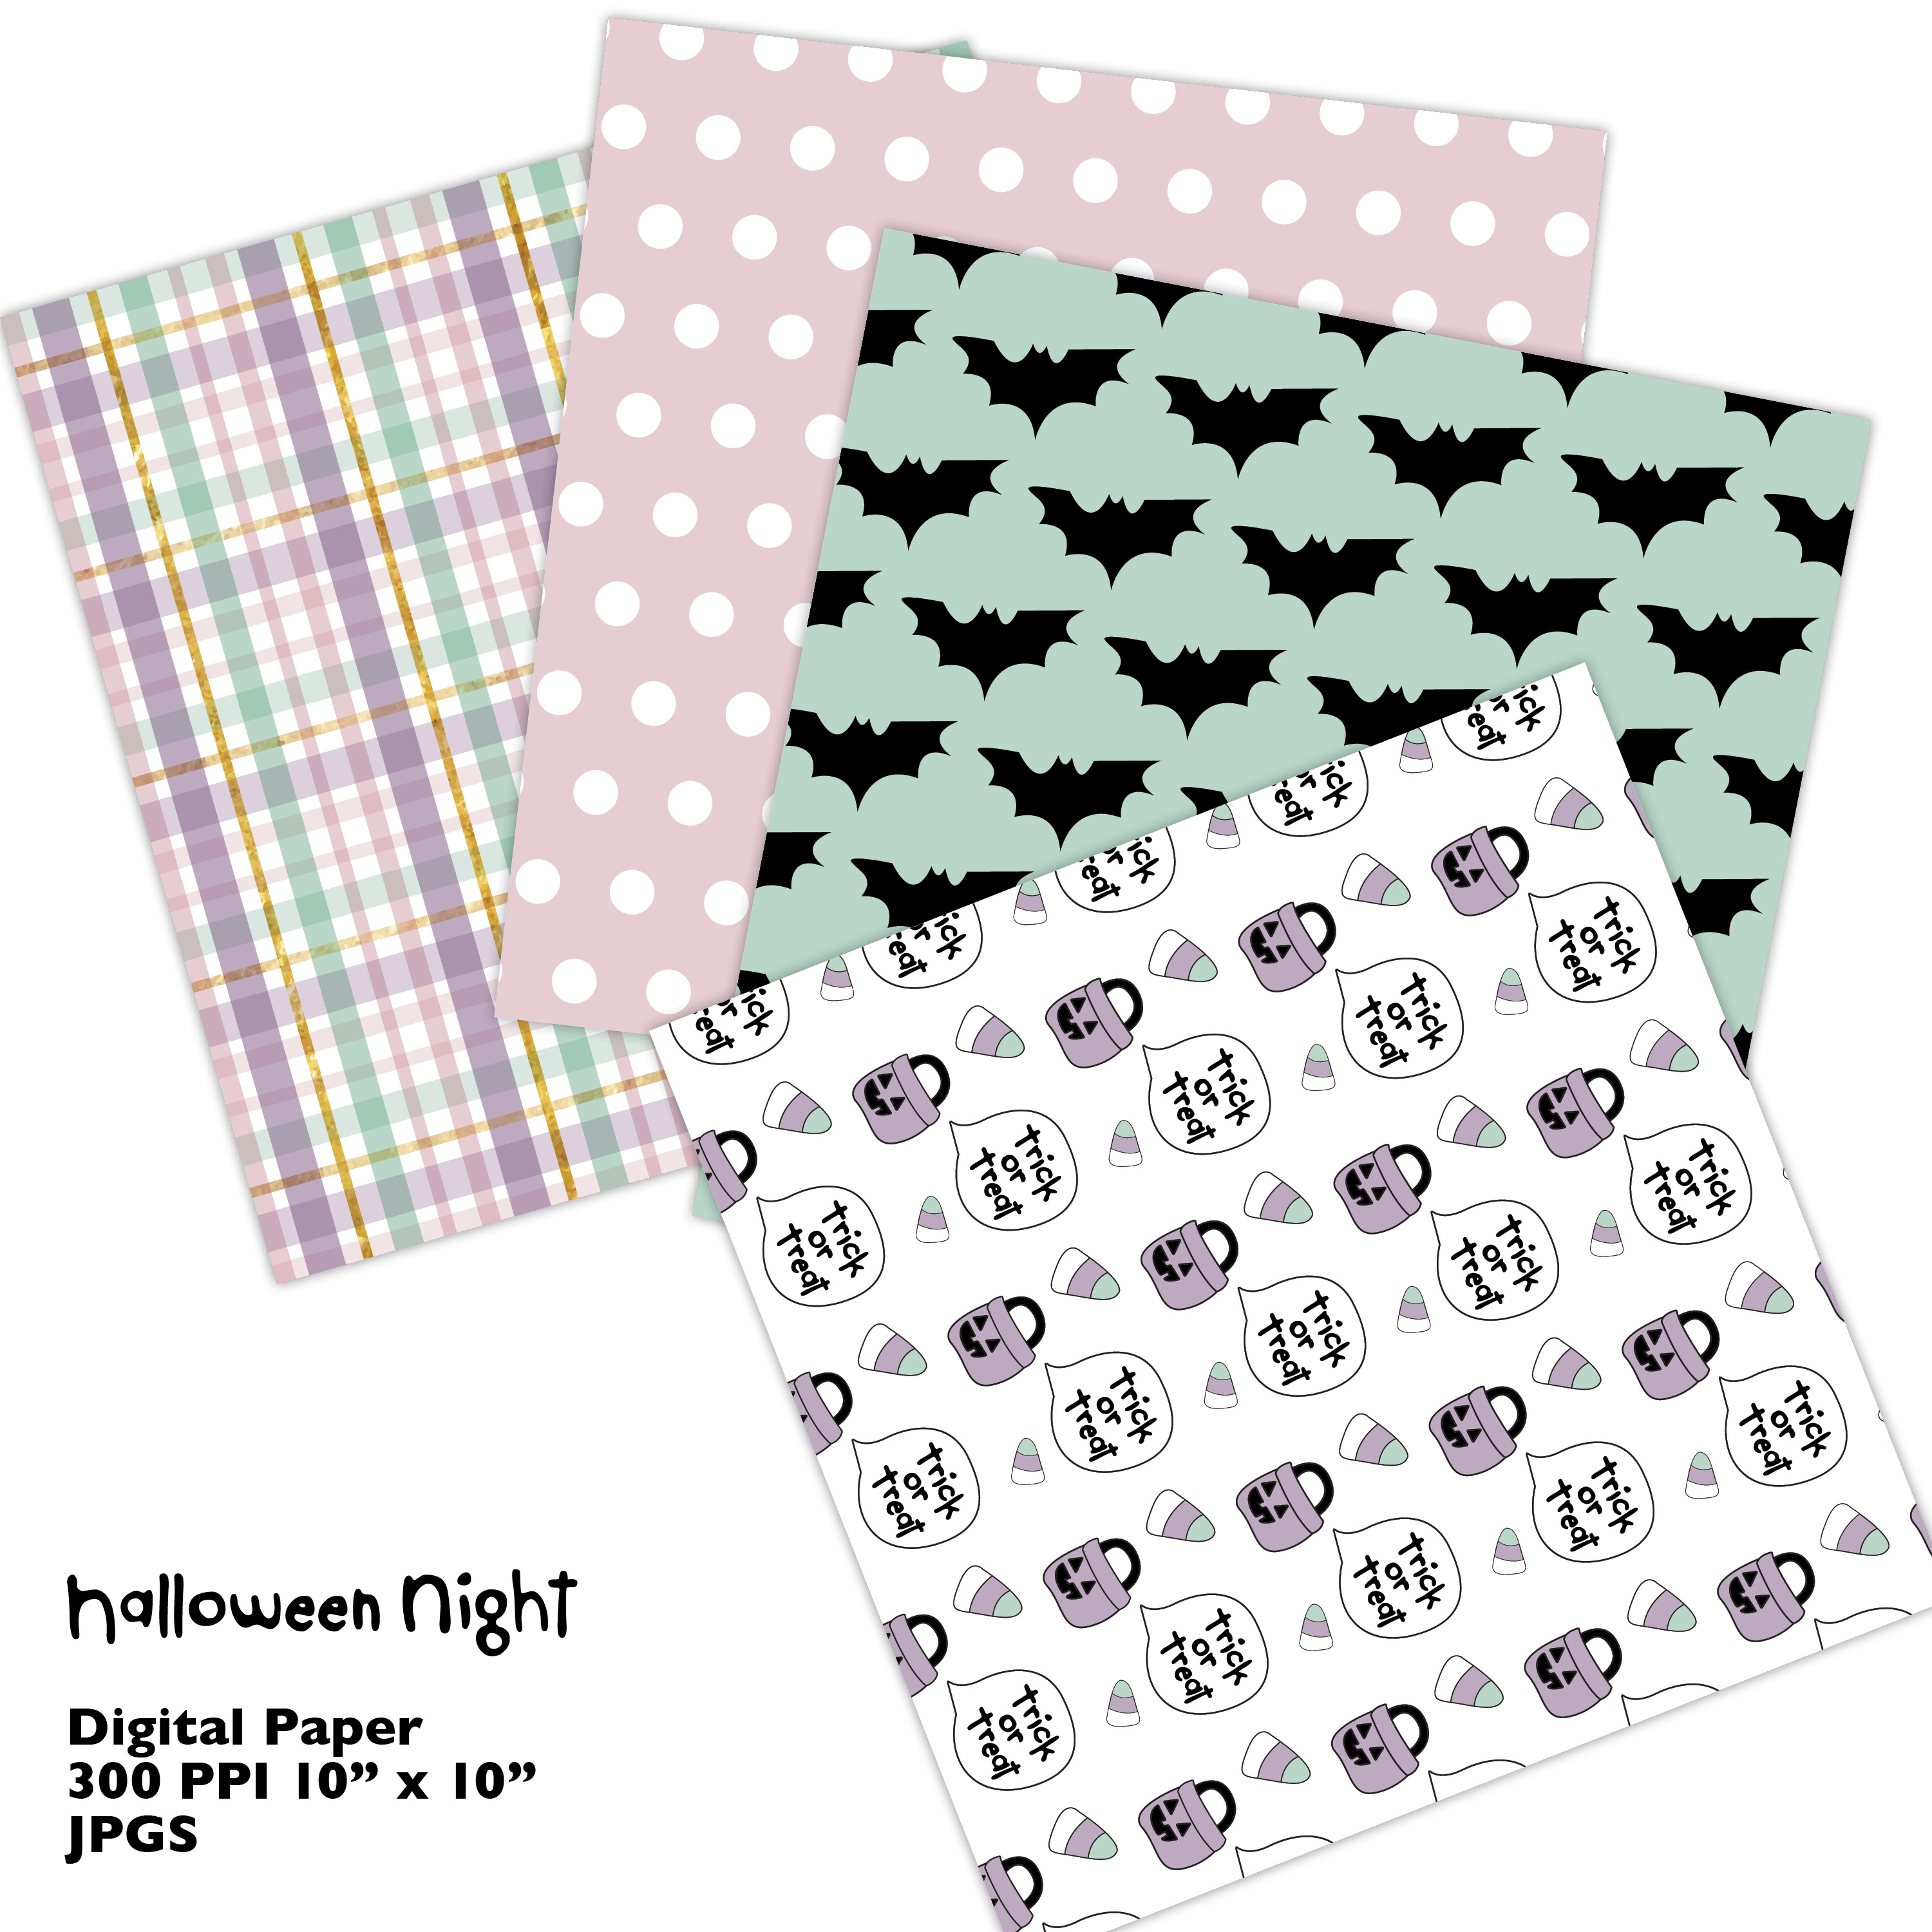 Hand Drawn Halloween Digital Paper in Pastel Colors example image 2